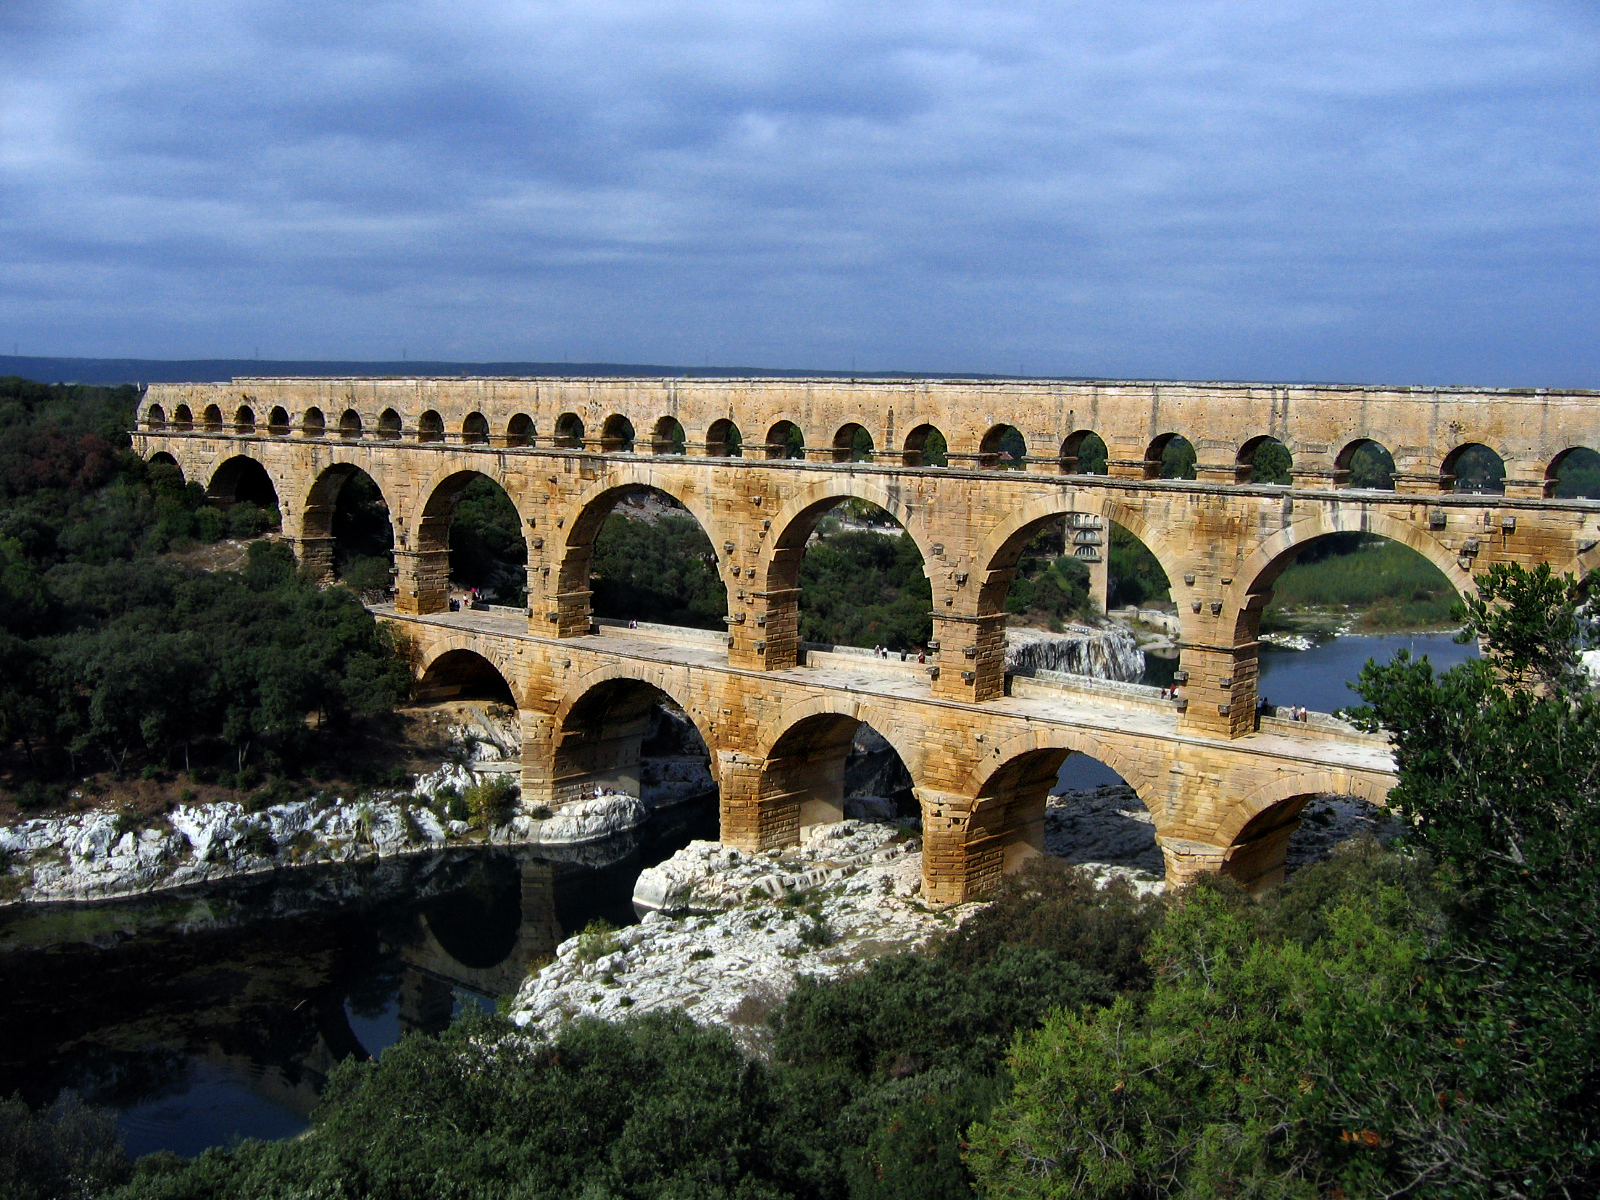 By Emanuele (Flickr: Pont du Gard) [CC BY-SA 2.0]  via Wikimedia Commons